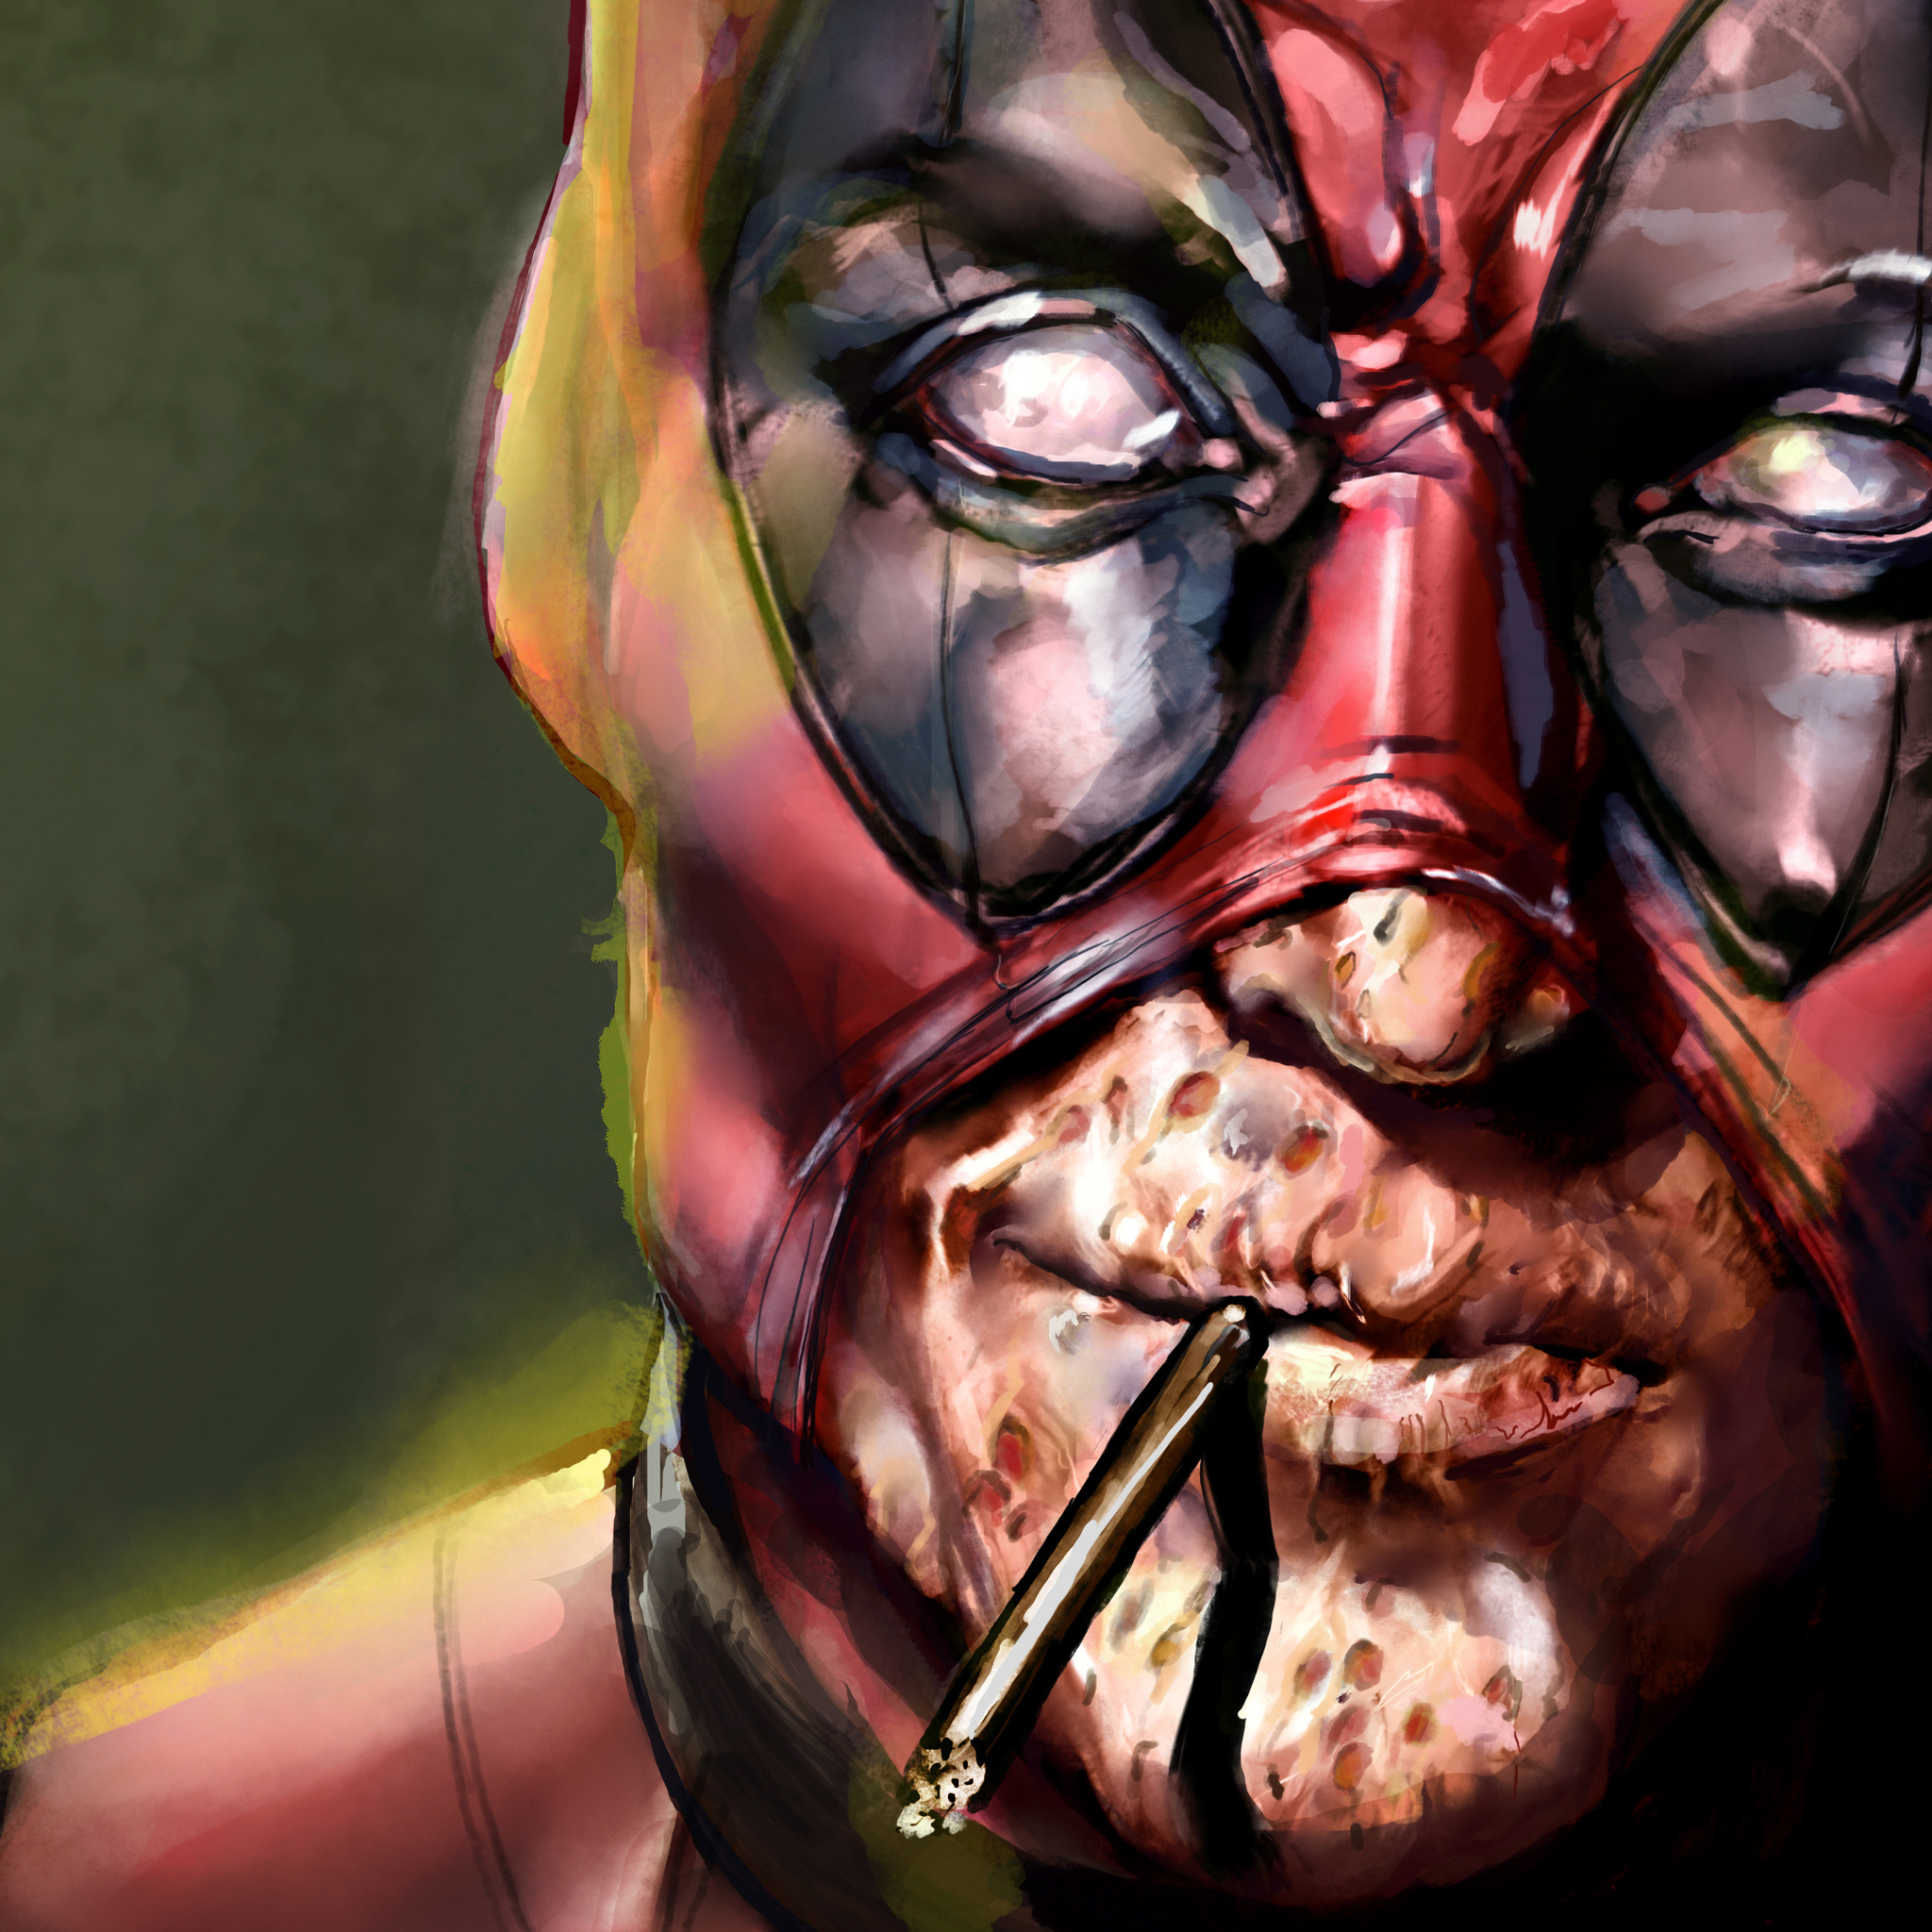 deadpool-art-new-4k-hb.jpg